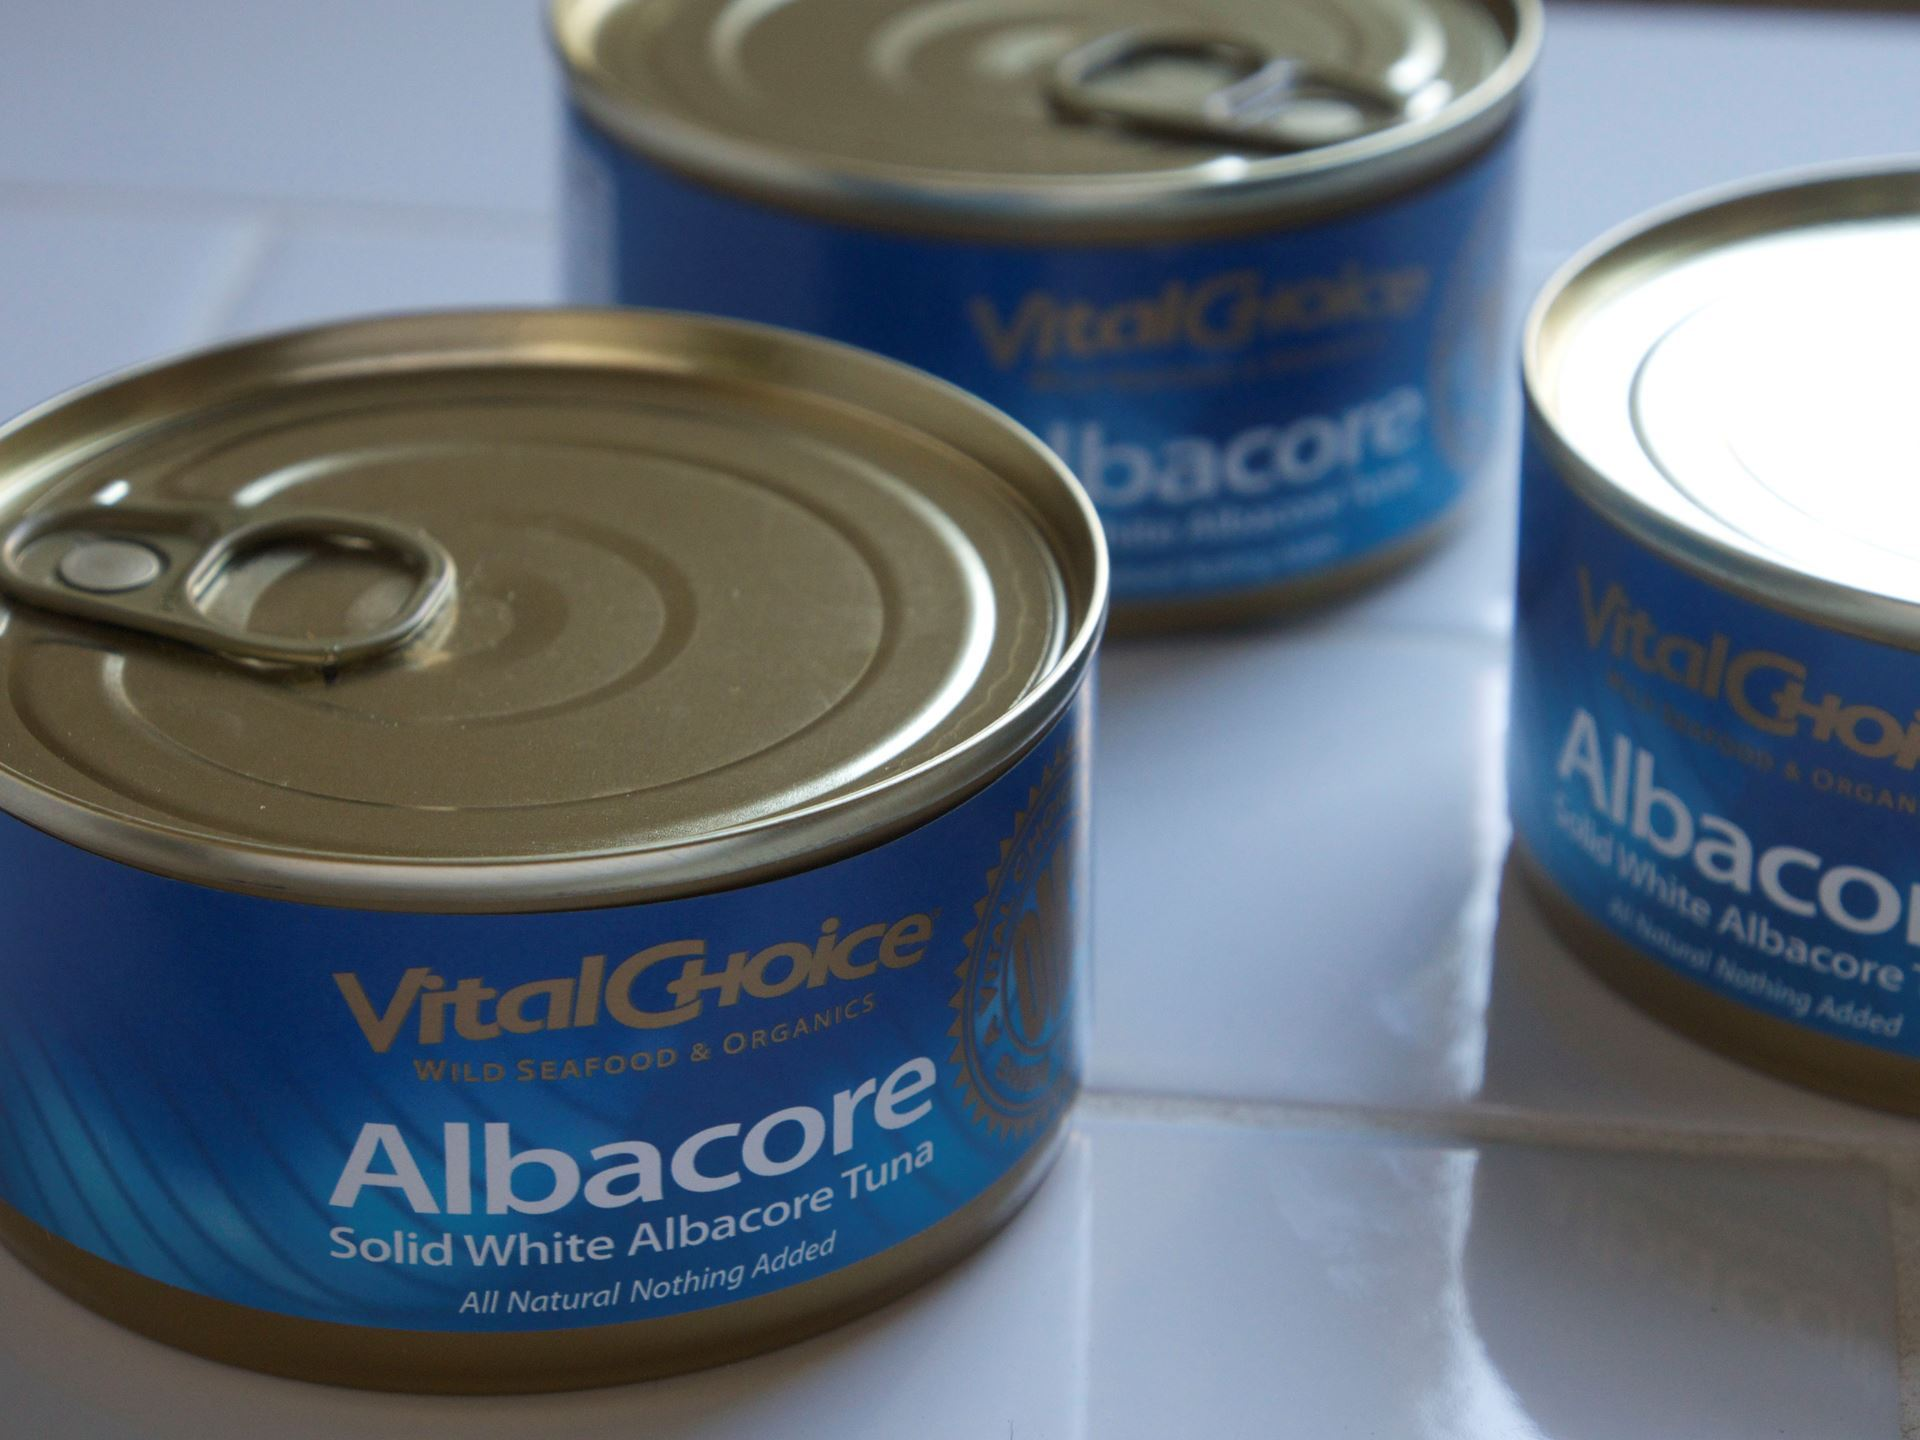 Picture of Vital Choice Albacore Tuna 6 oz.